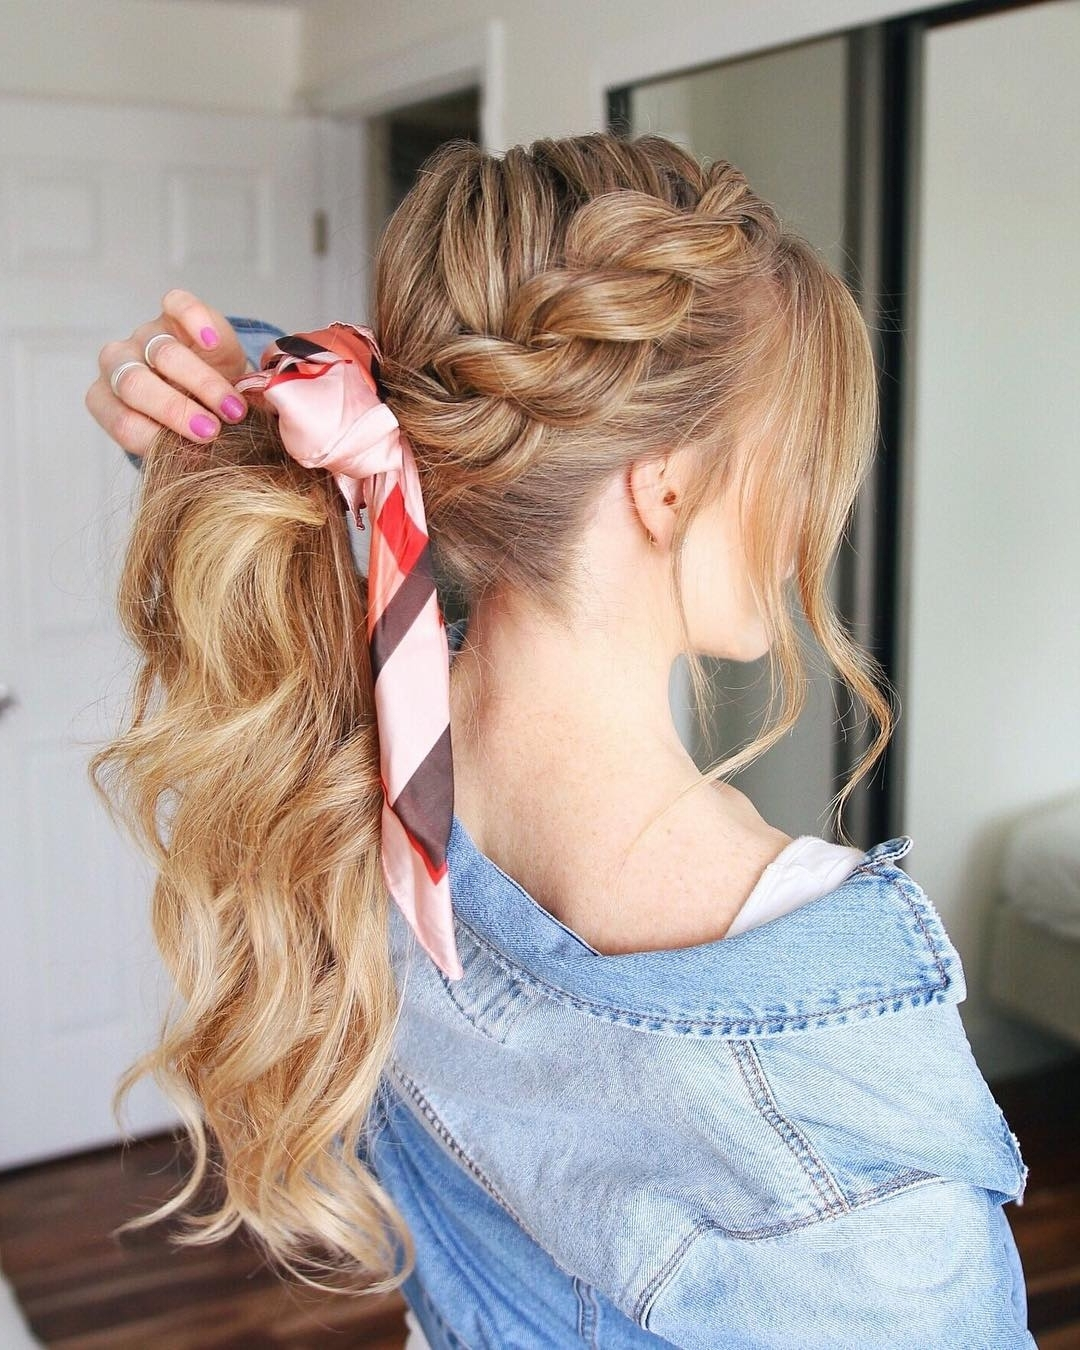 10 Creative Ponytail Hairstyles For Long Hair, Summer Hairstyle Intended For Most Current Blonde Flirty Teased Ponytail Hairstyles (View 1 of 20)